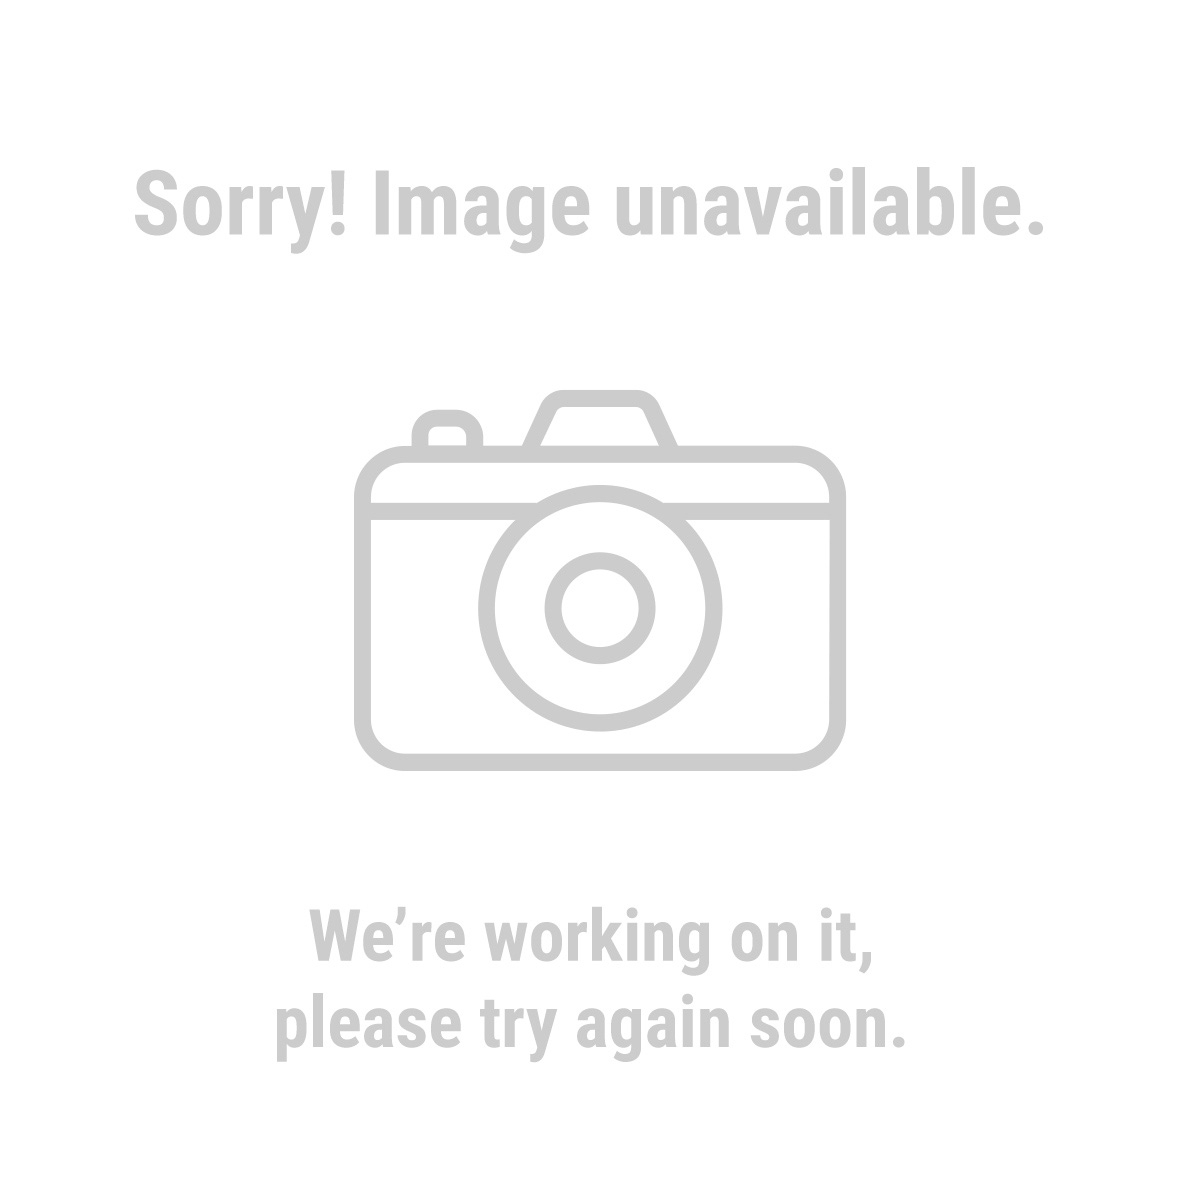 Bauer 63445 15 Amp 12-1/2 in. Portable Thickness Planer